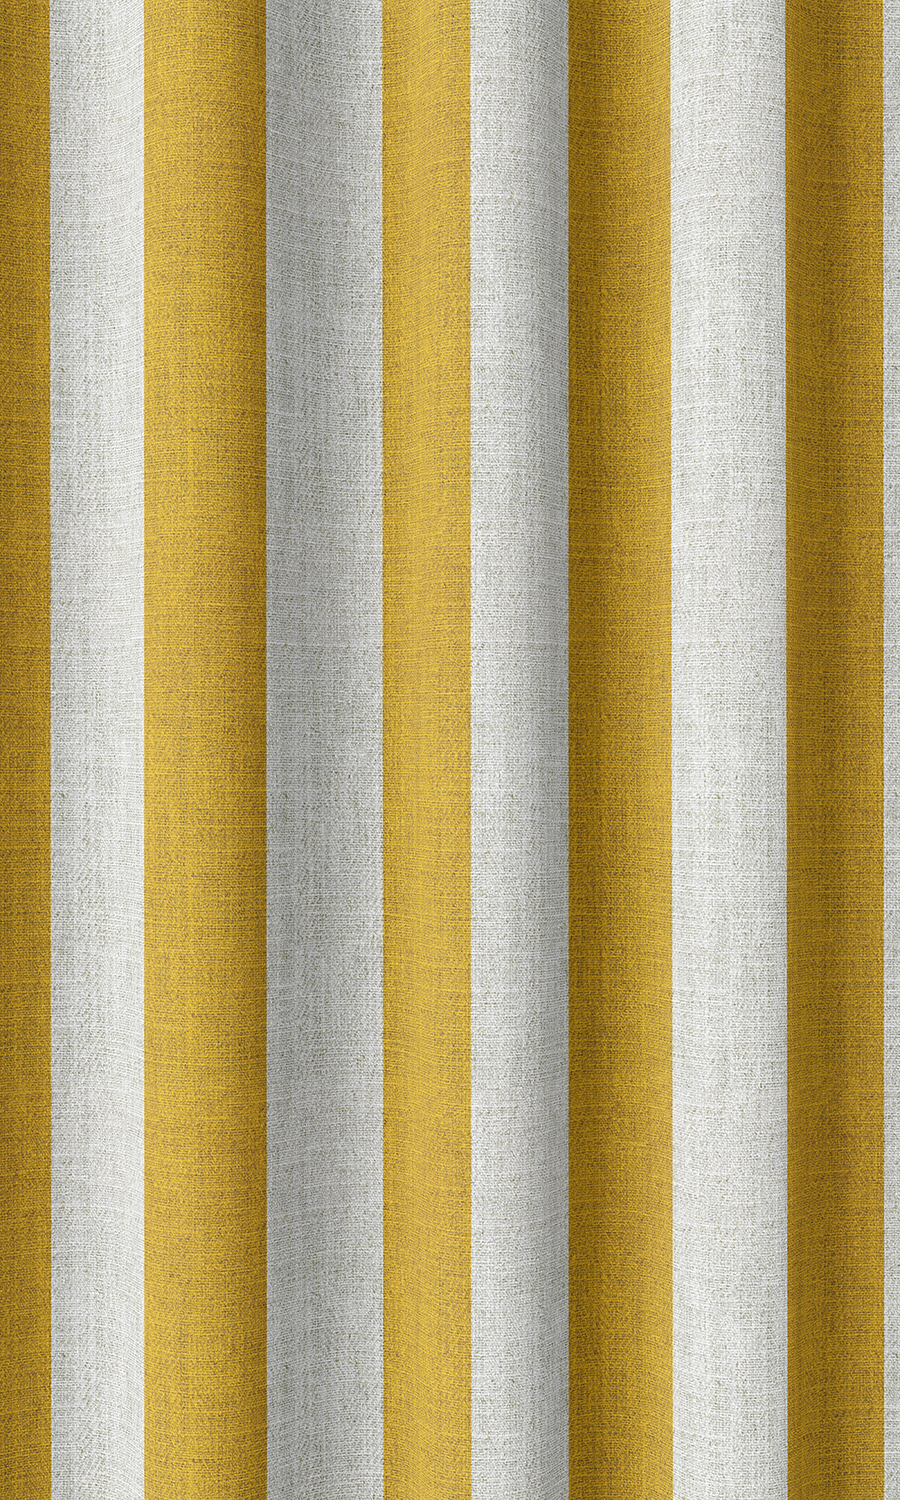 Yellow Striped Custom Fake Shades For Dining Room